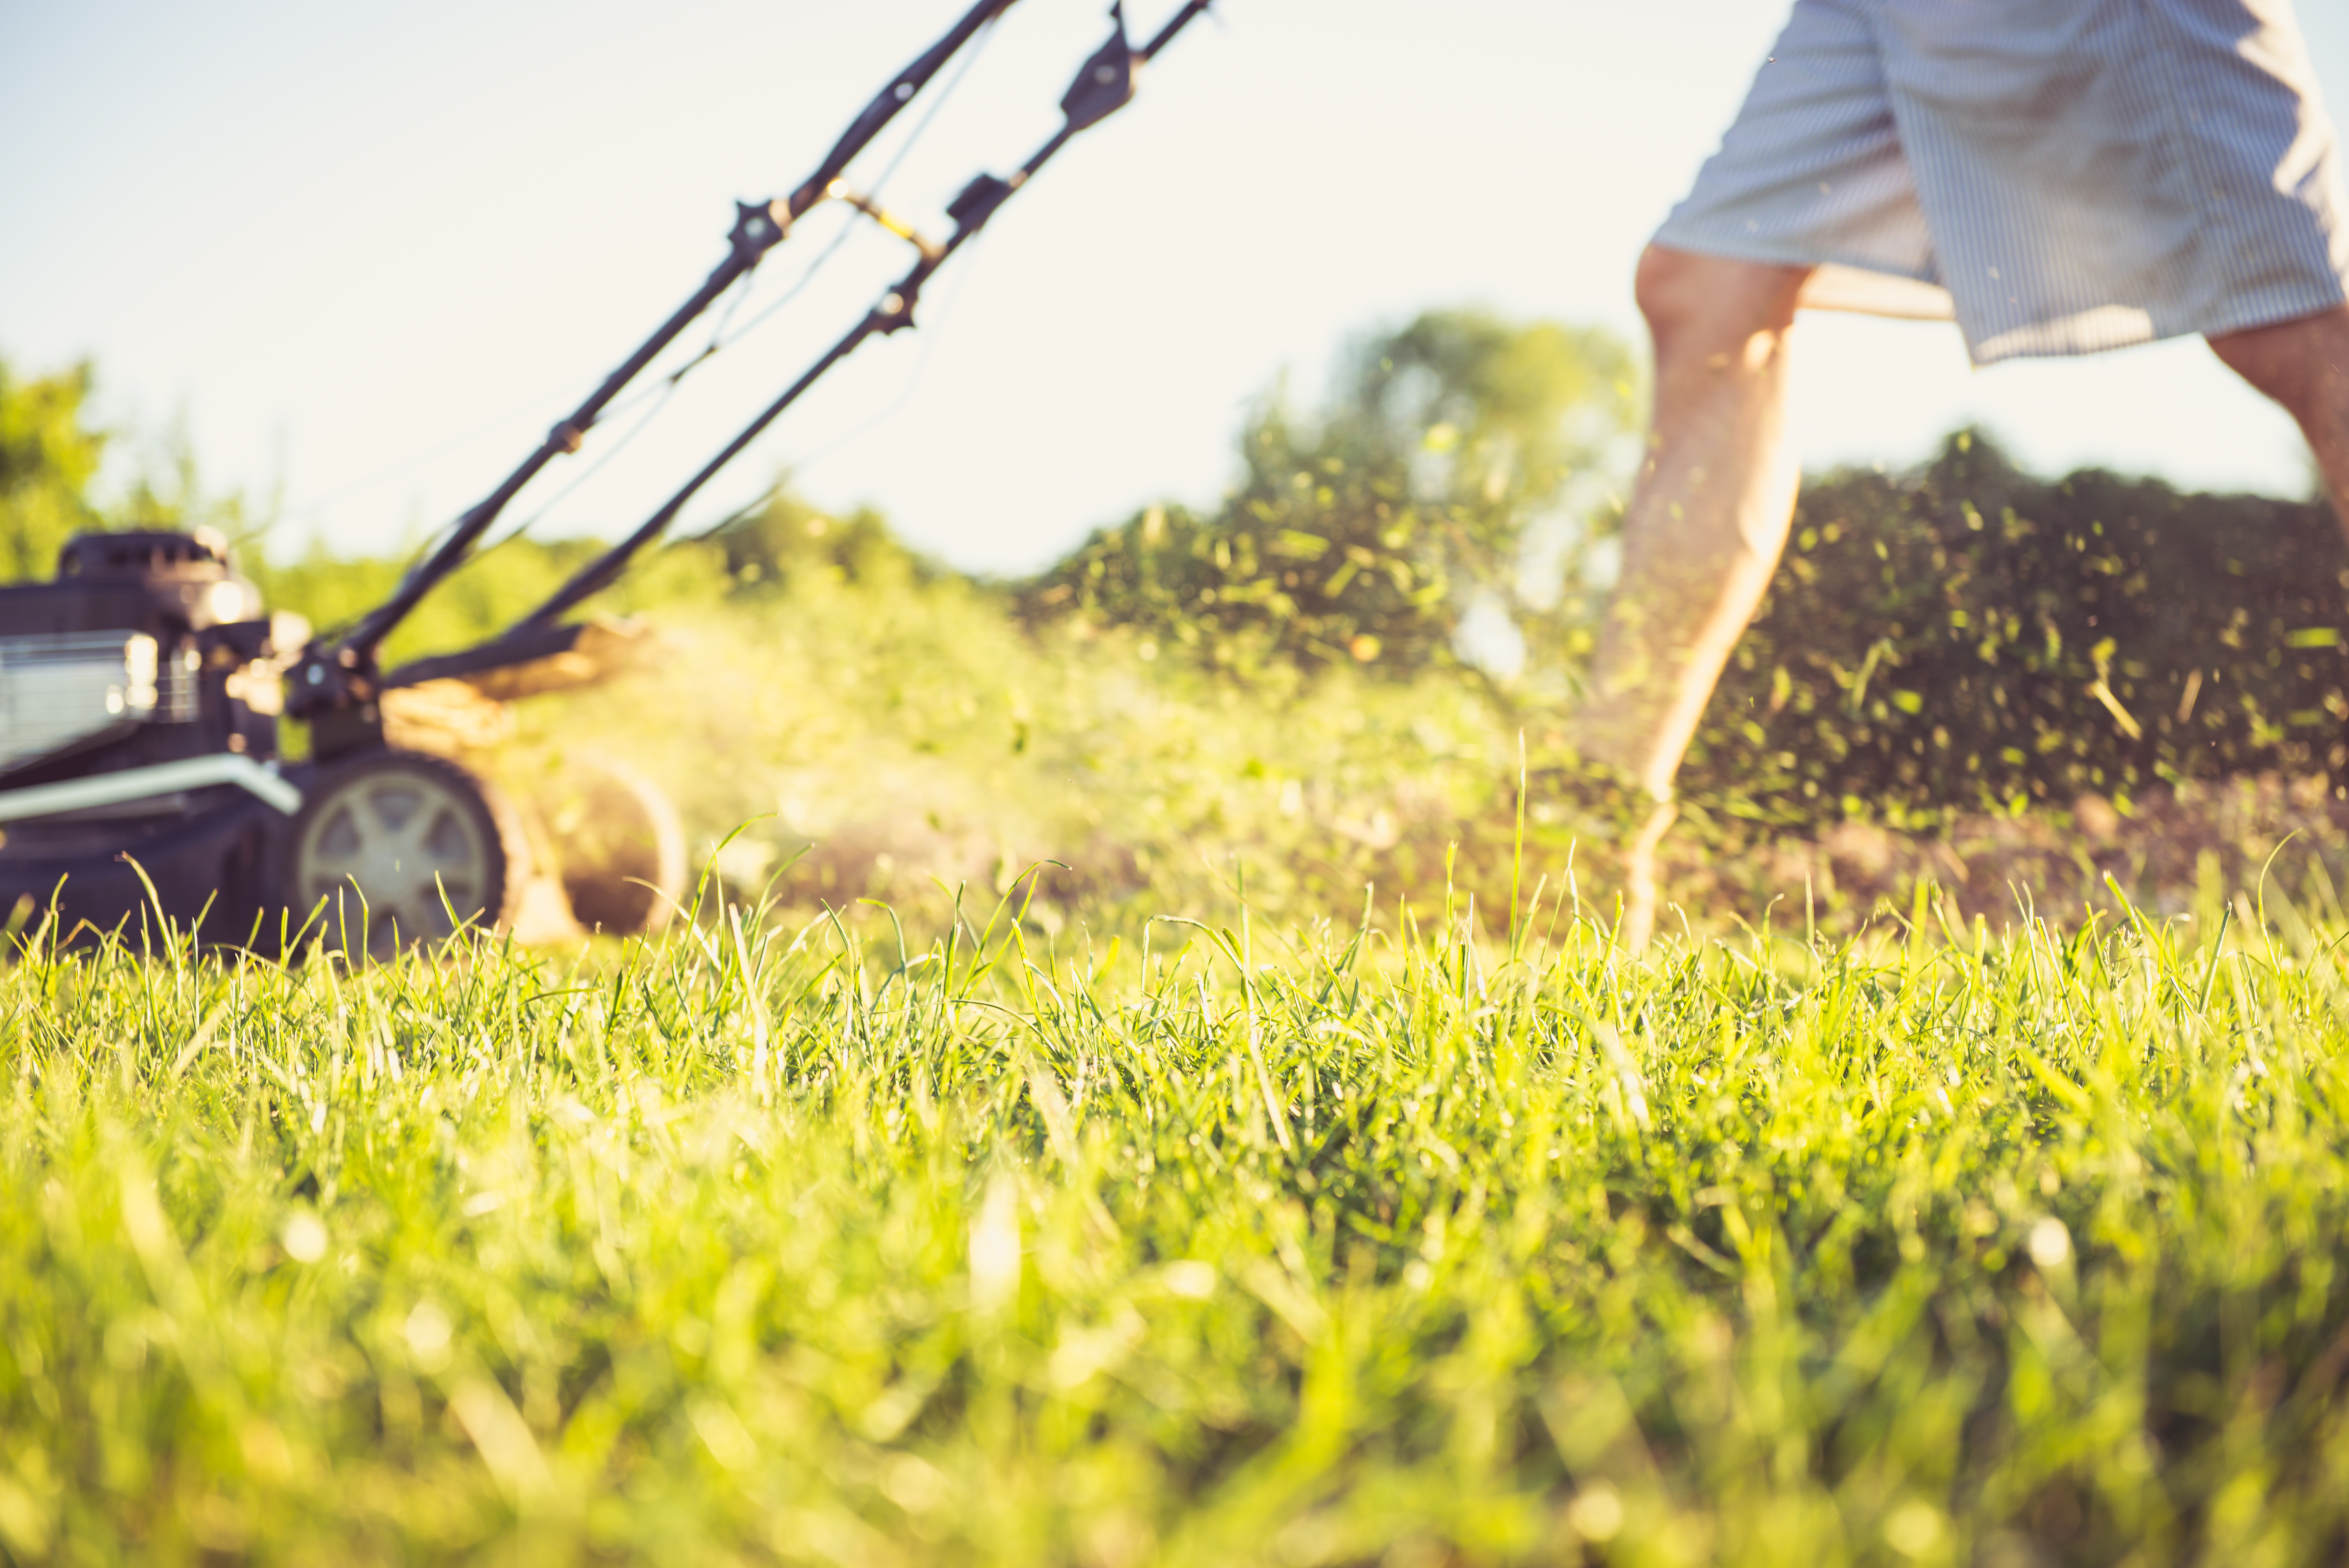 What Kind of Gas Do Lawn Mowers Use? | Home Guides | SF Gate